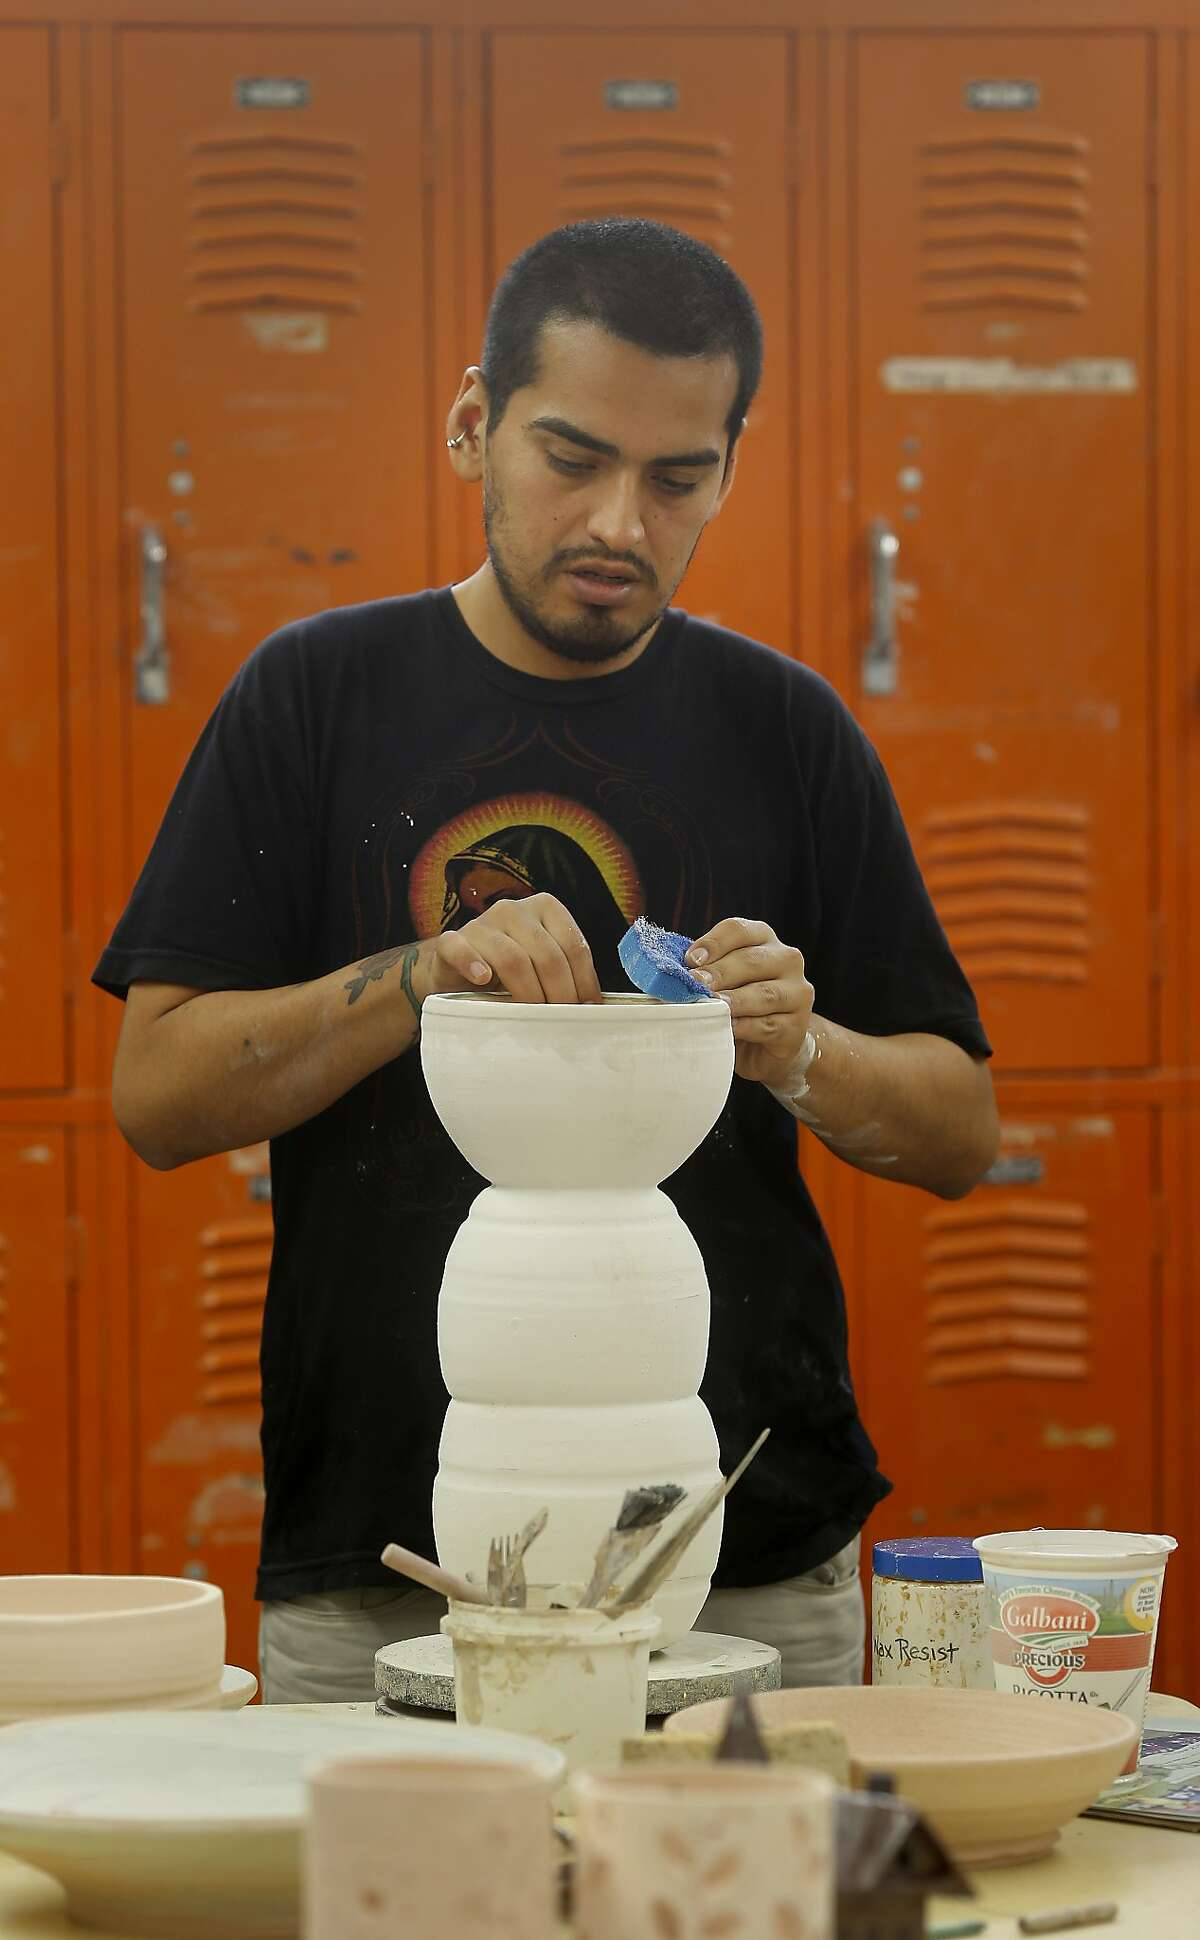 Cesar Espinoza works on his vase assignment for ceramics class at the City College of San Francisco classes at Fort Mason. Fort Mason, the 35 year old arts center in San Francisco, Calif., is thriving and growing with new displays, classes and a new lounge.